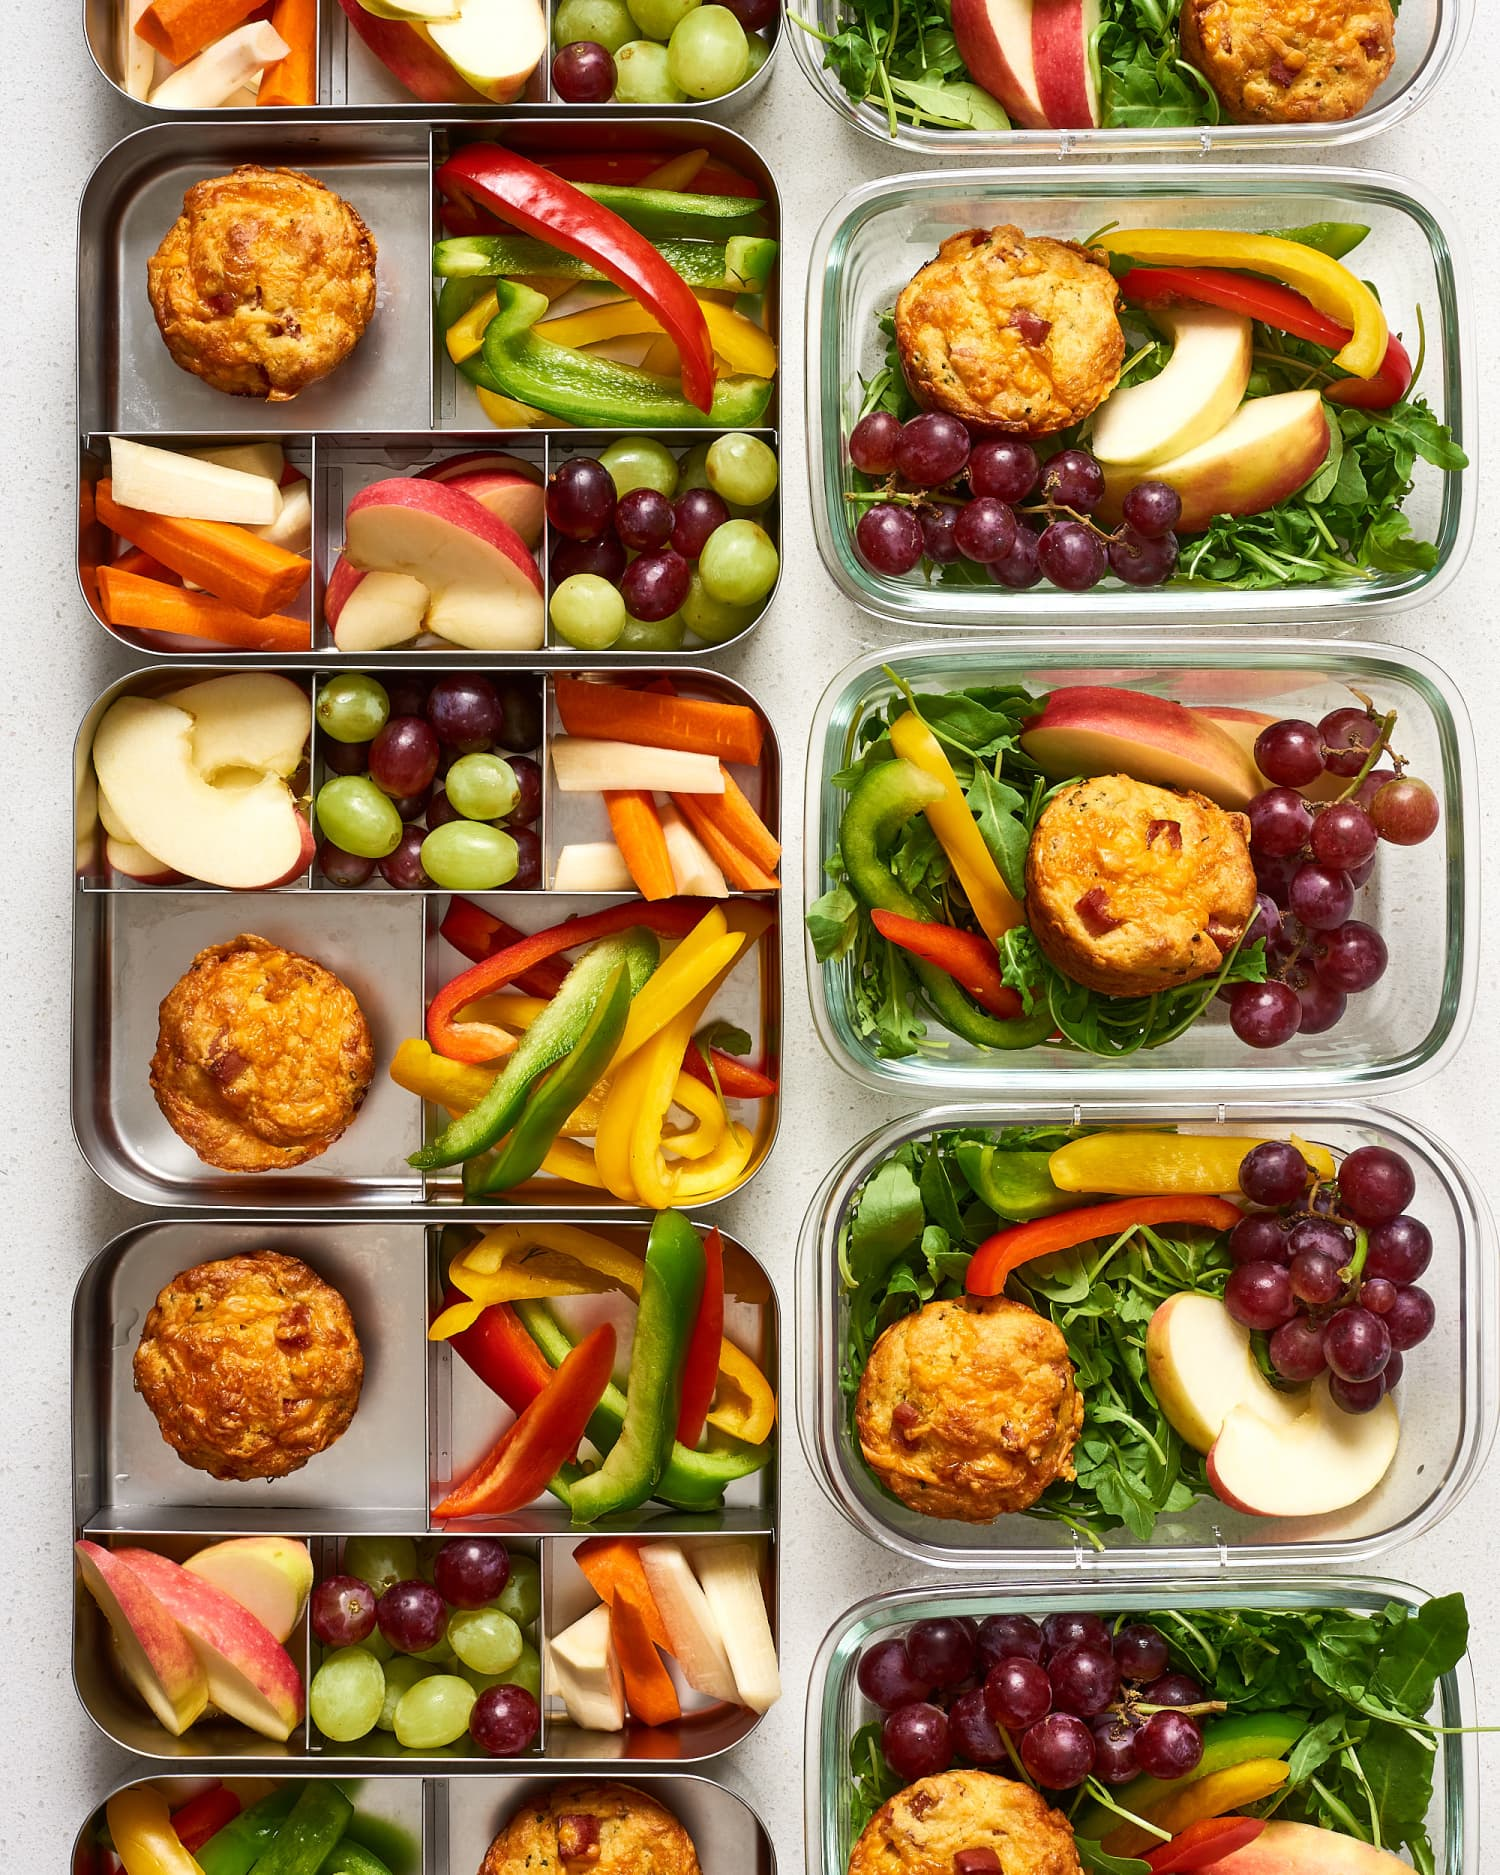 Meal Prep Plan: A Week of Easy Breakfasts & Lunches for 4